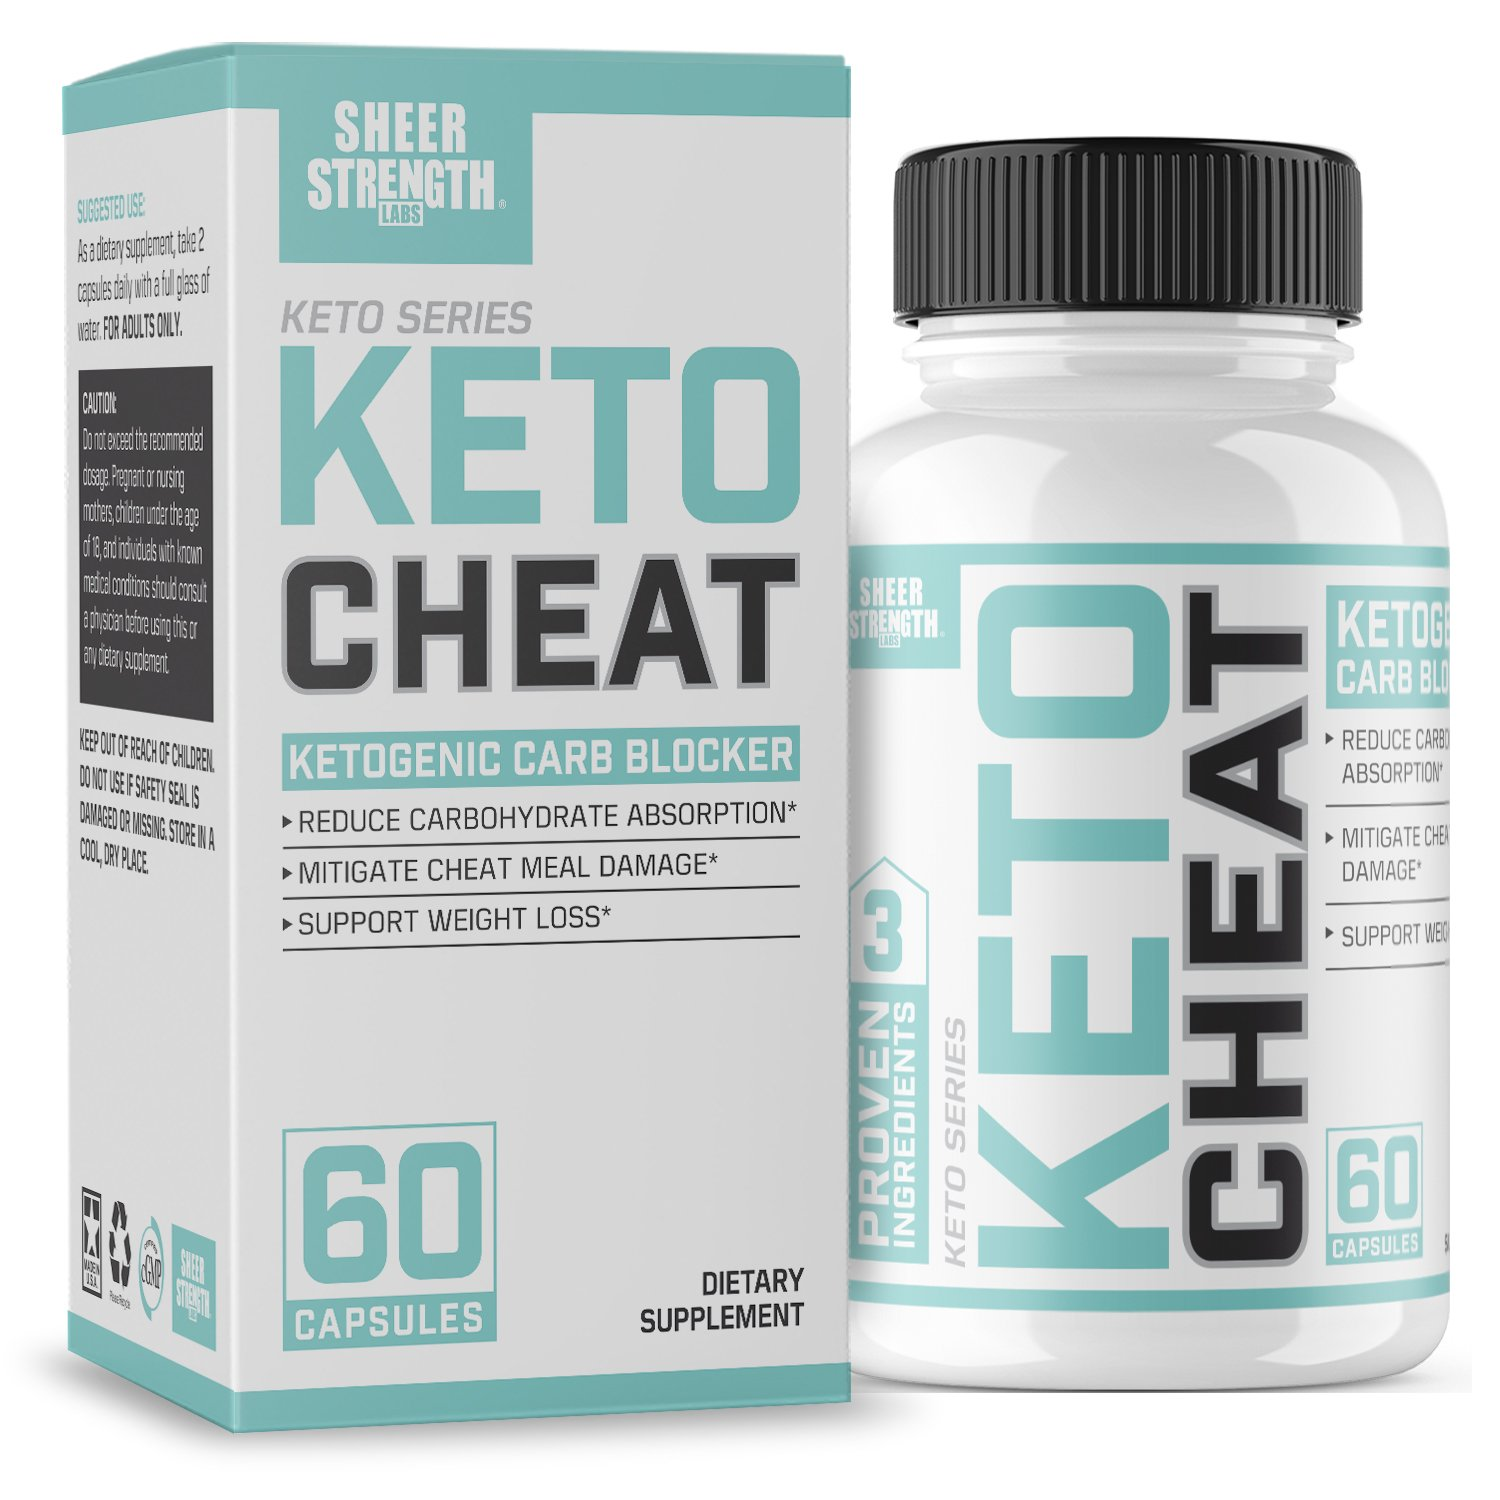 Extra Strength Ketogenic Carb Blocker & Appetite Suppressant - Promotes Healthy Weight Loss - White Kidney Bean, Green Tea Extract, Cinnamon - 60 Fat Burner Pills - Sheer Strength Labs by Sheer Strength Labs